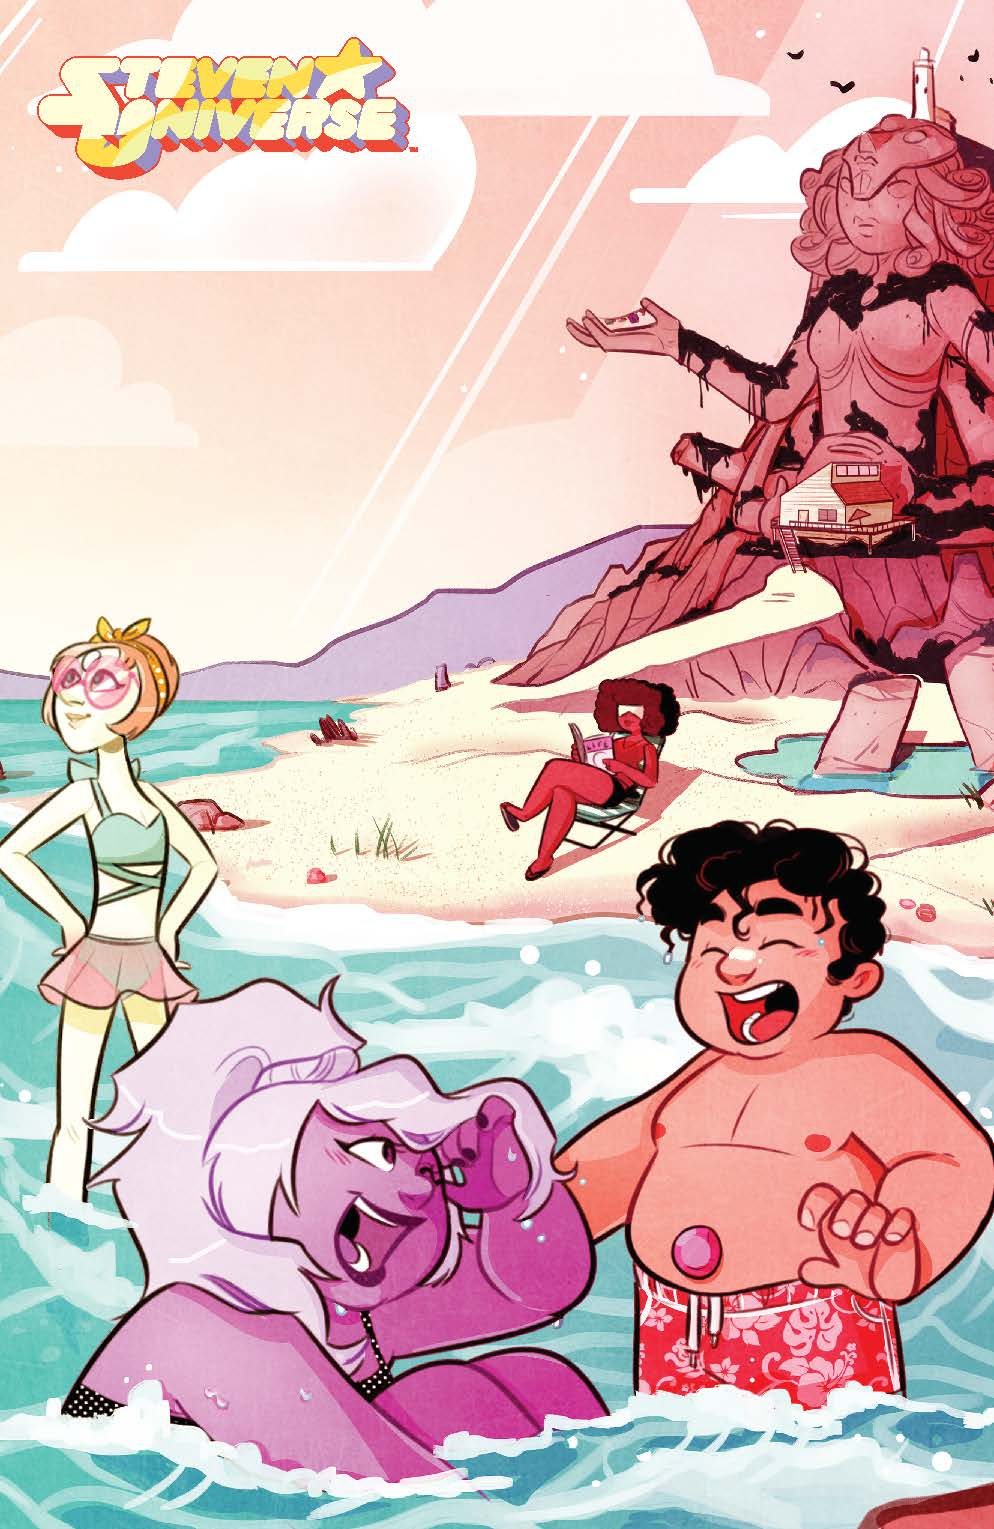 """Steven Universe"" issue 2 variant"